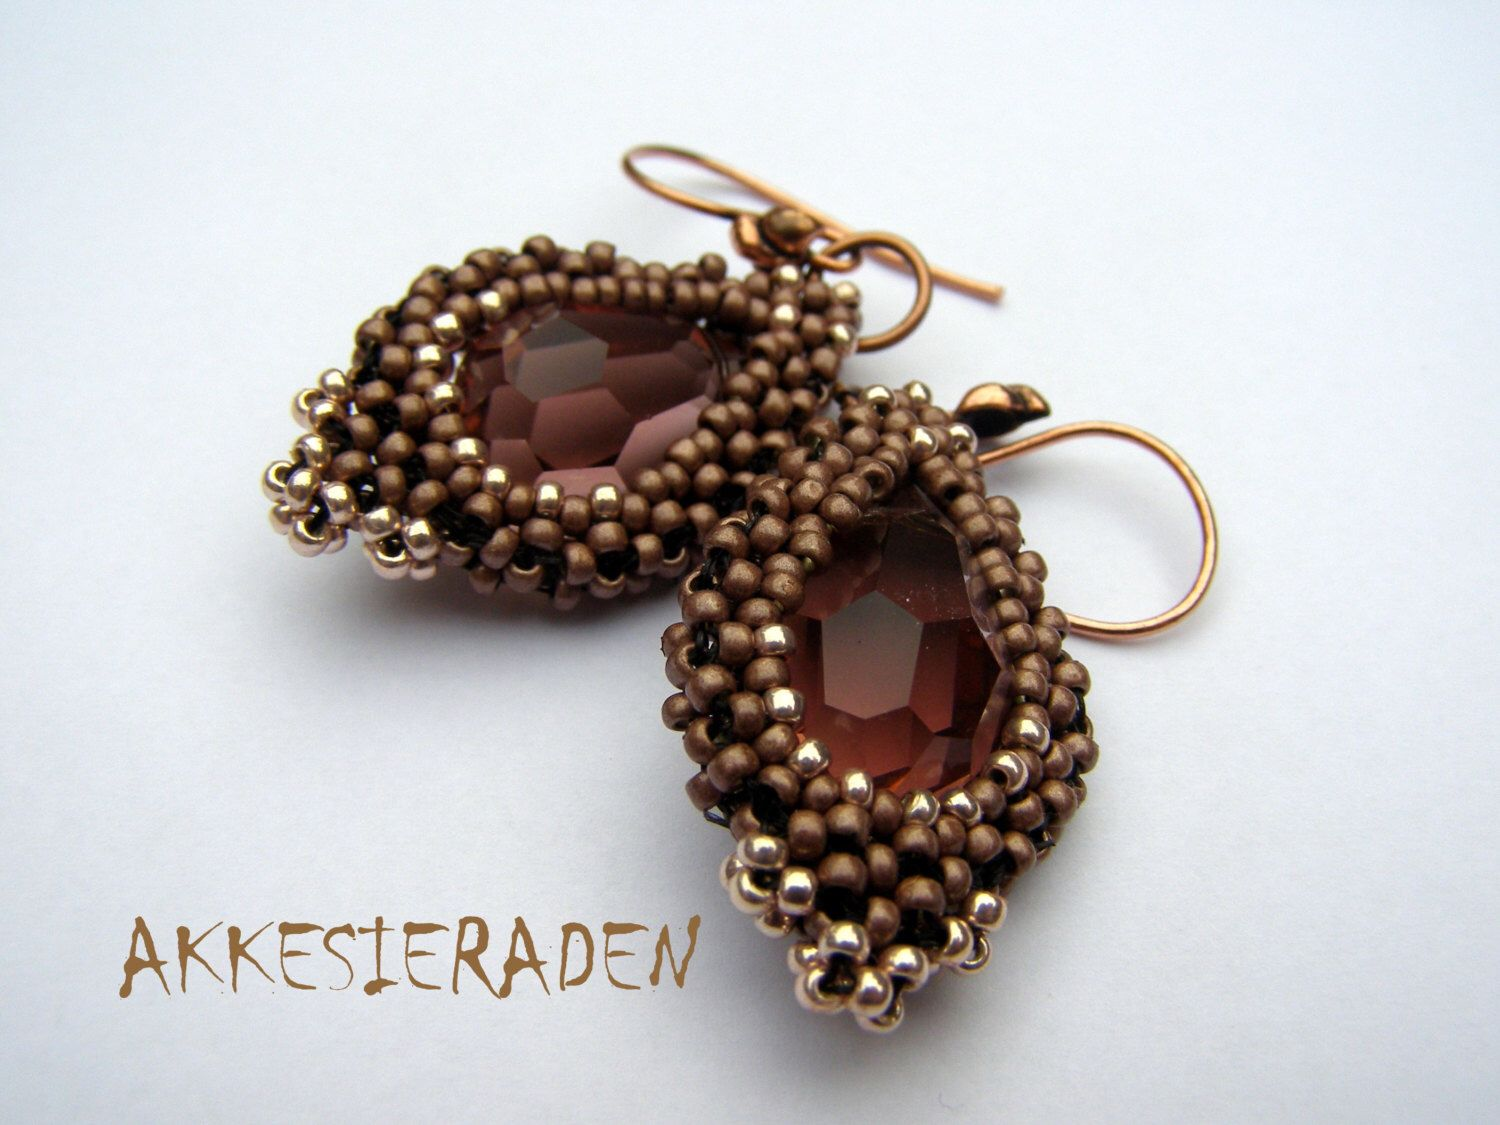 English pattern for the  Earrings with Drops by Akkesieraden on Etsy https://www.etsy.com/listing/183313882/english-pattern-for-the-earrings-with